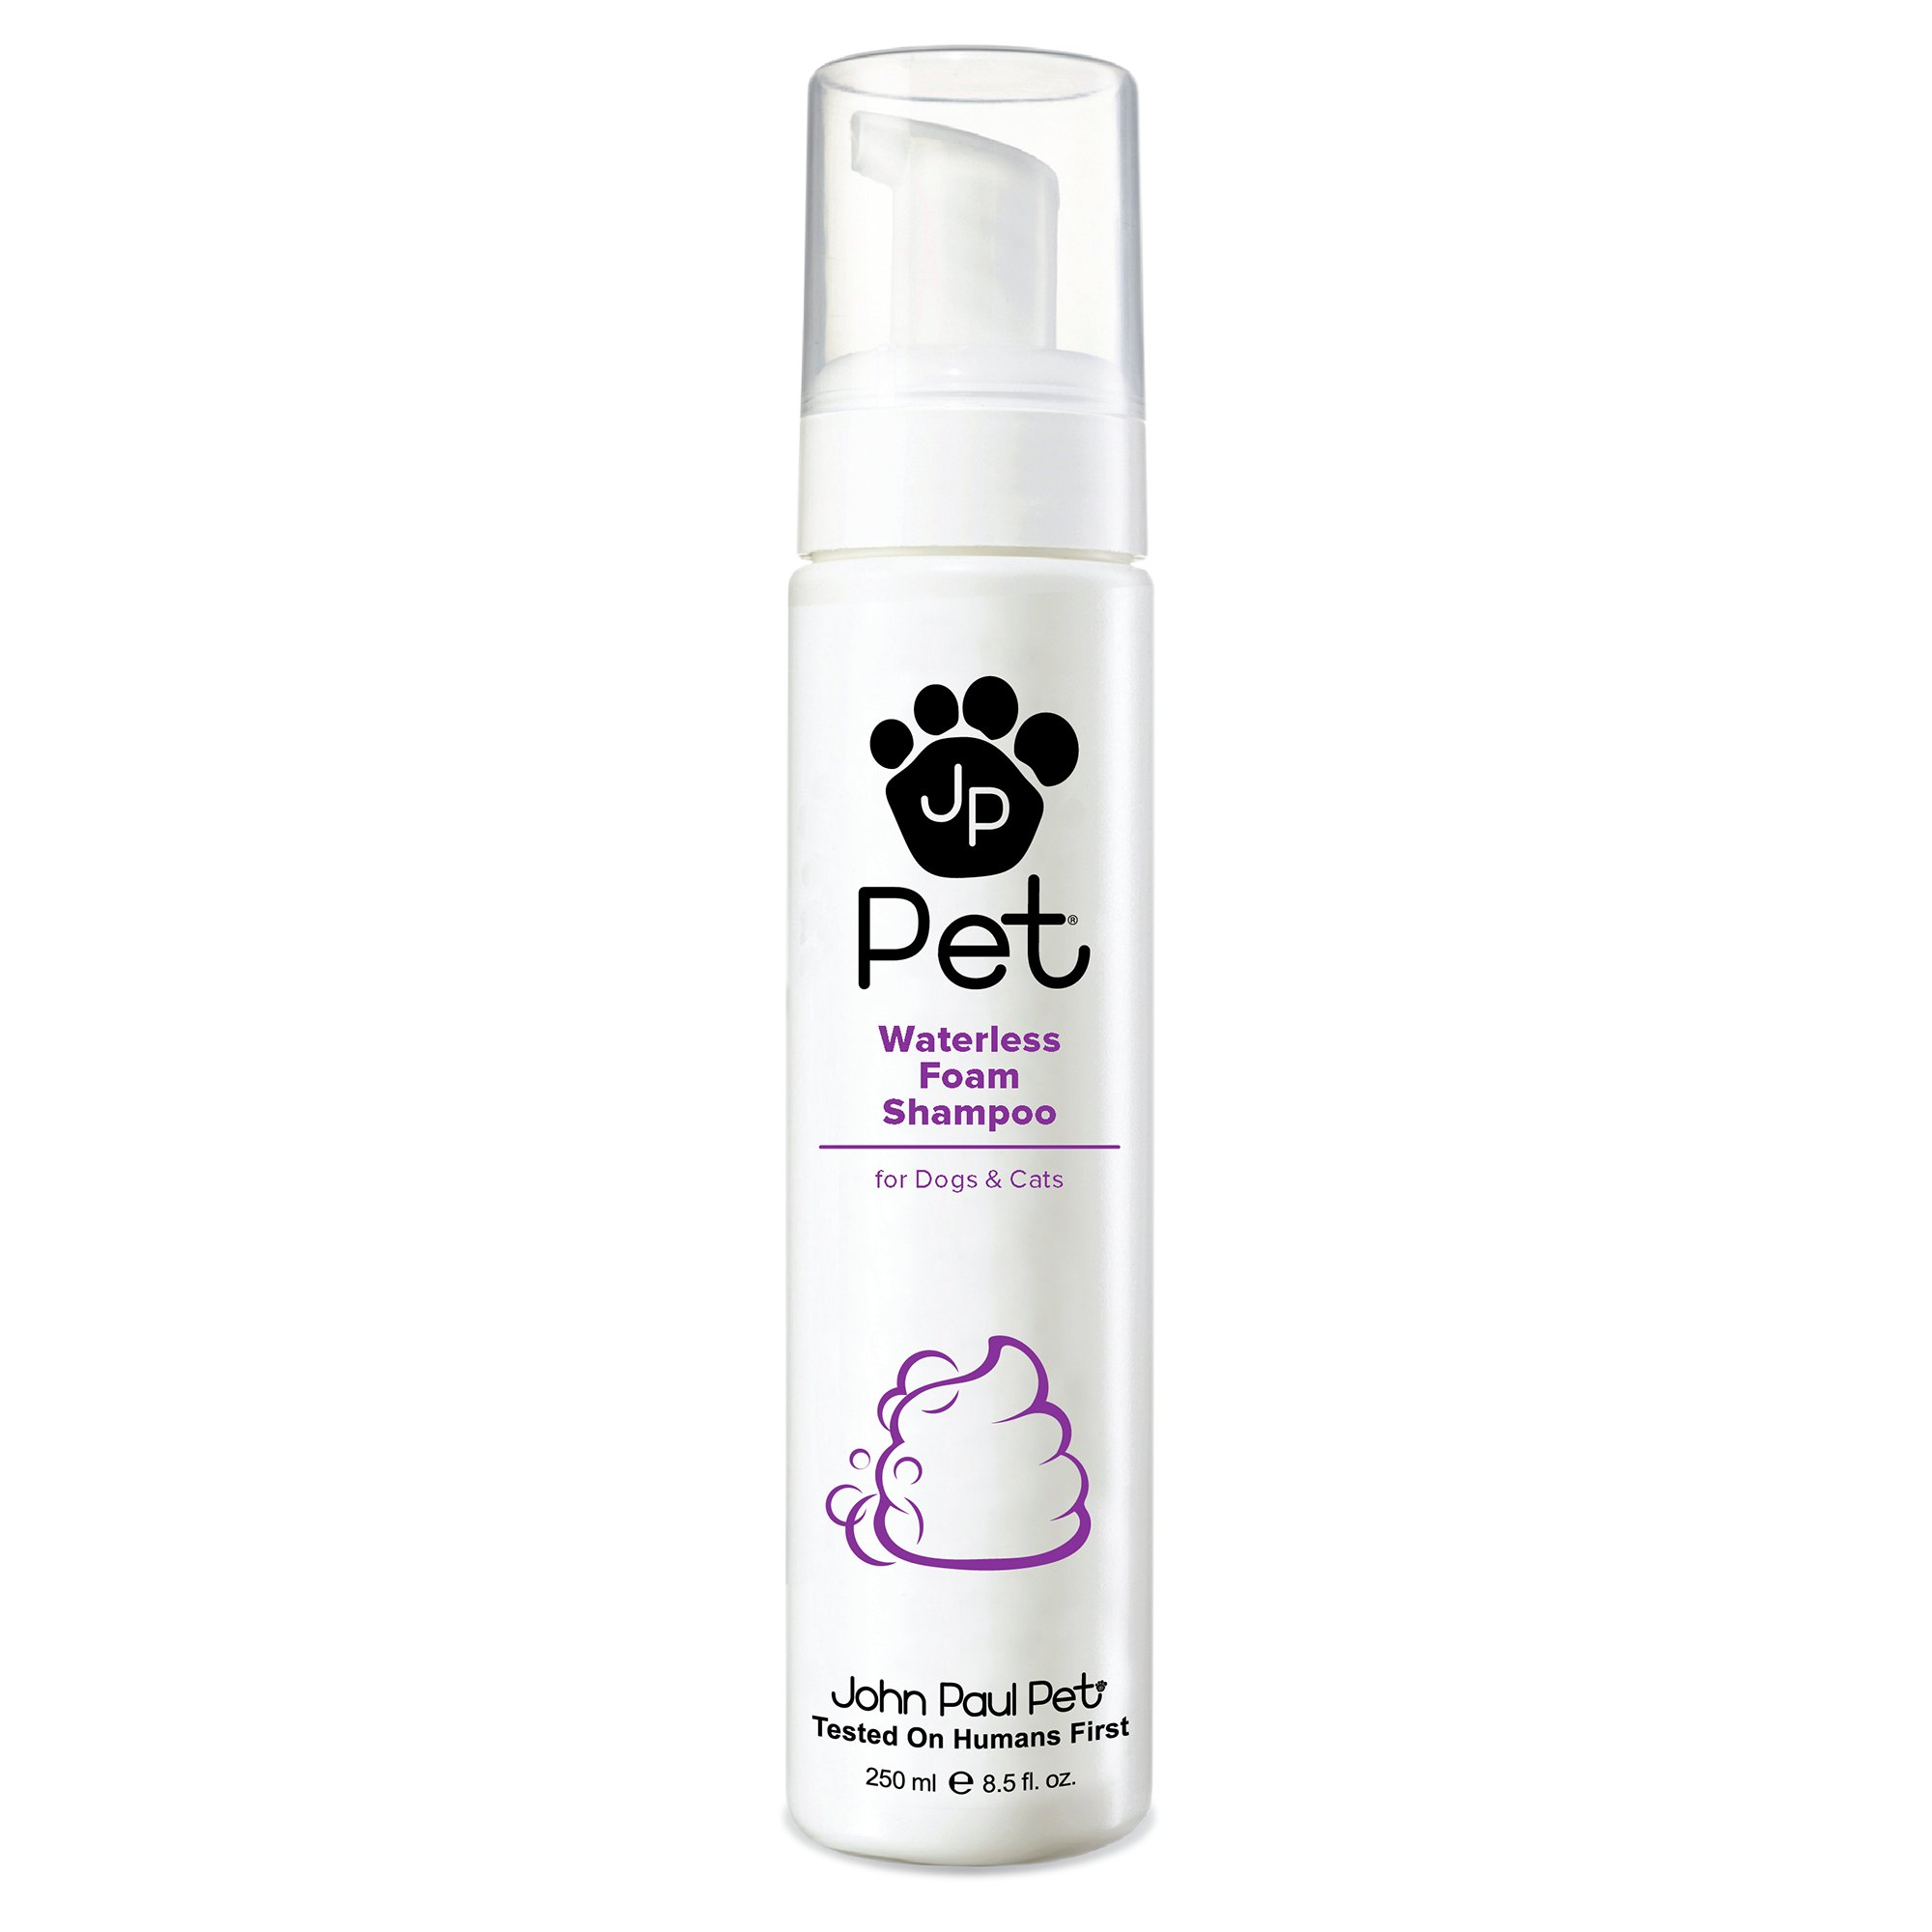 John Paul Pet Waterless Foam Dog & Cat Shampoo